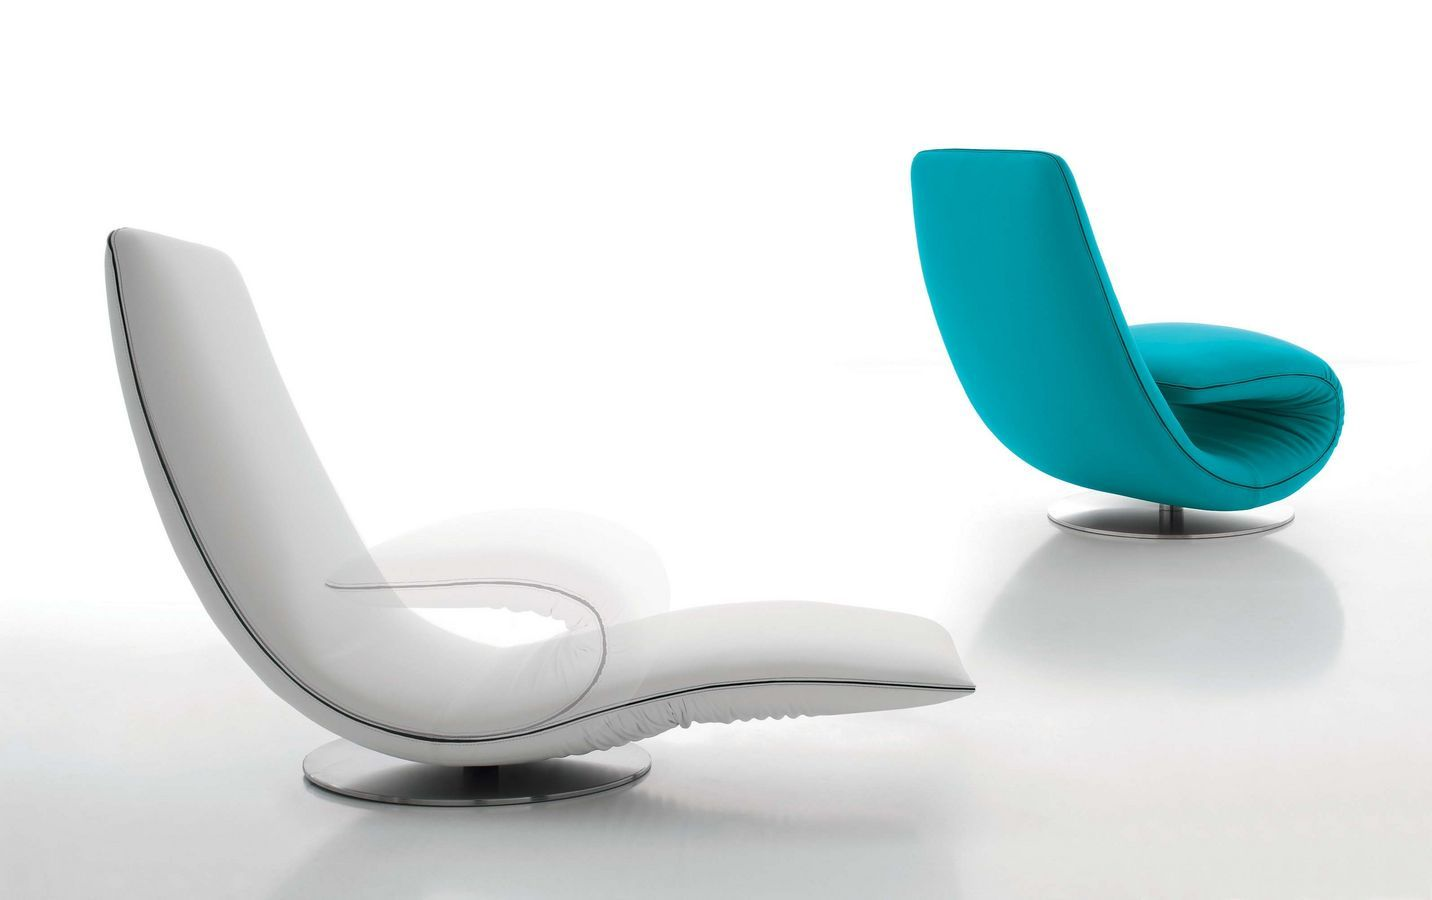 Original design lounge chair ricciolo by tonin casa tonin for Casa chaise longue